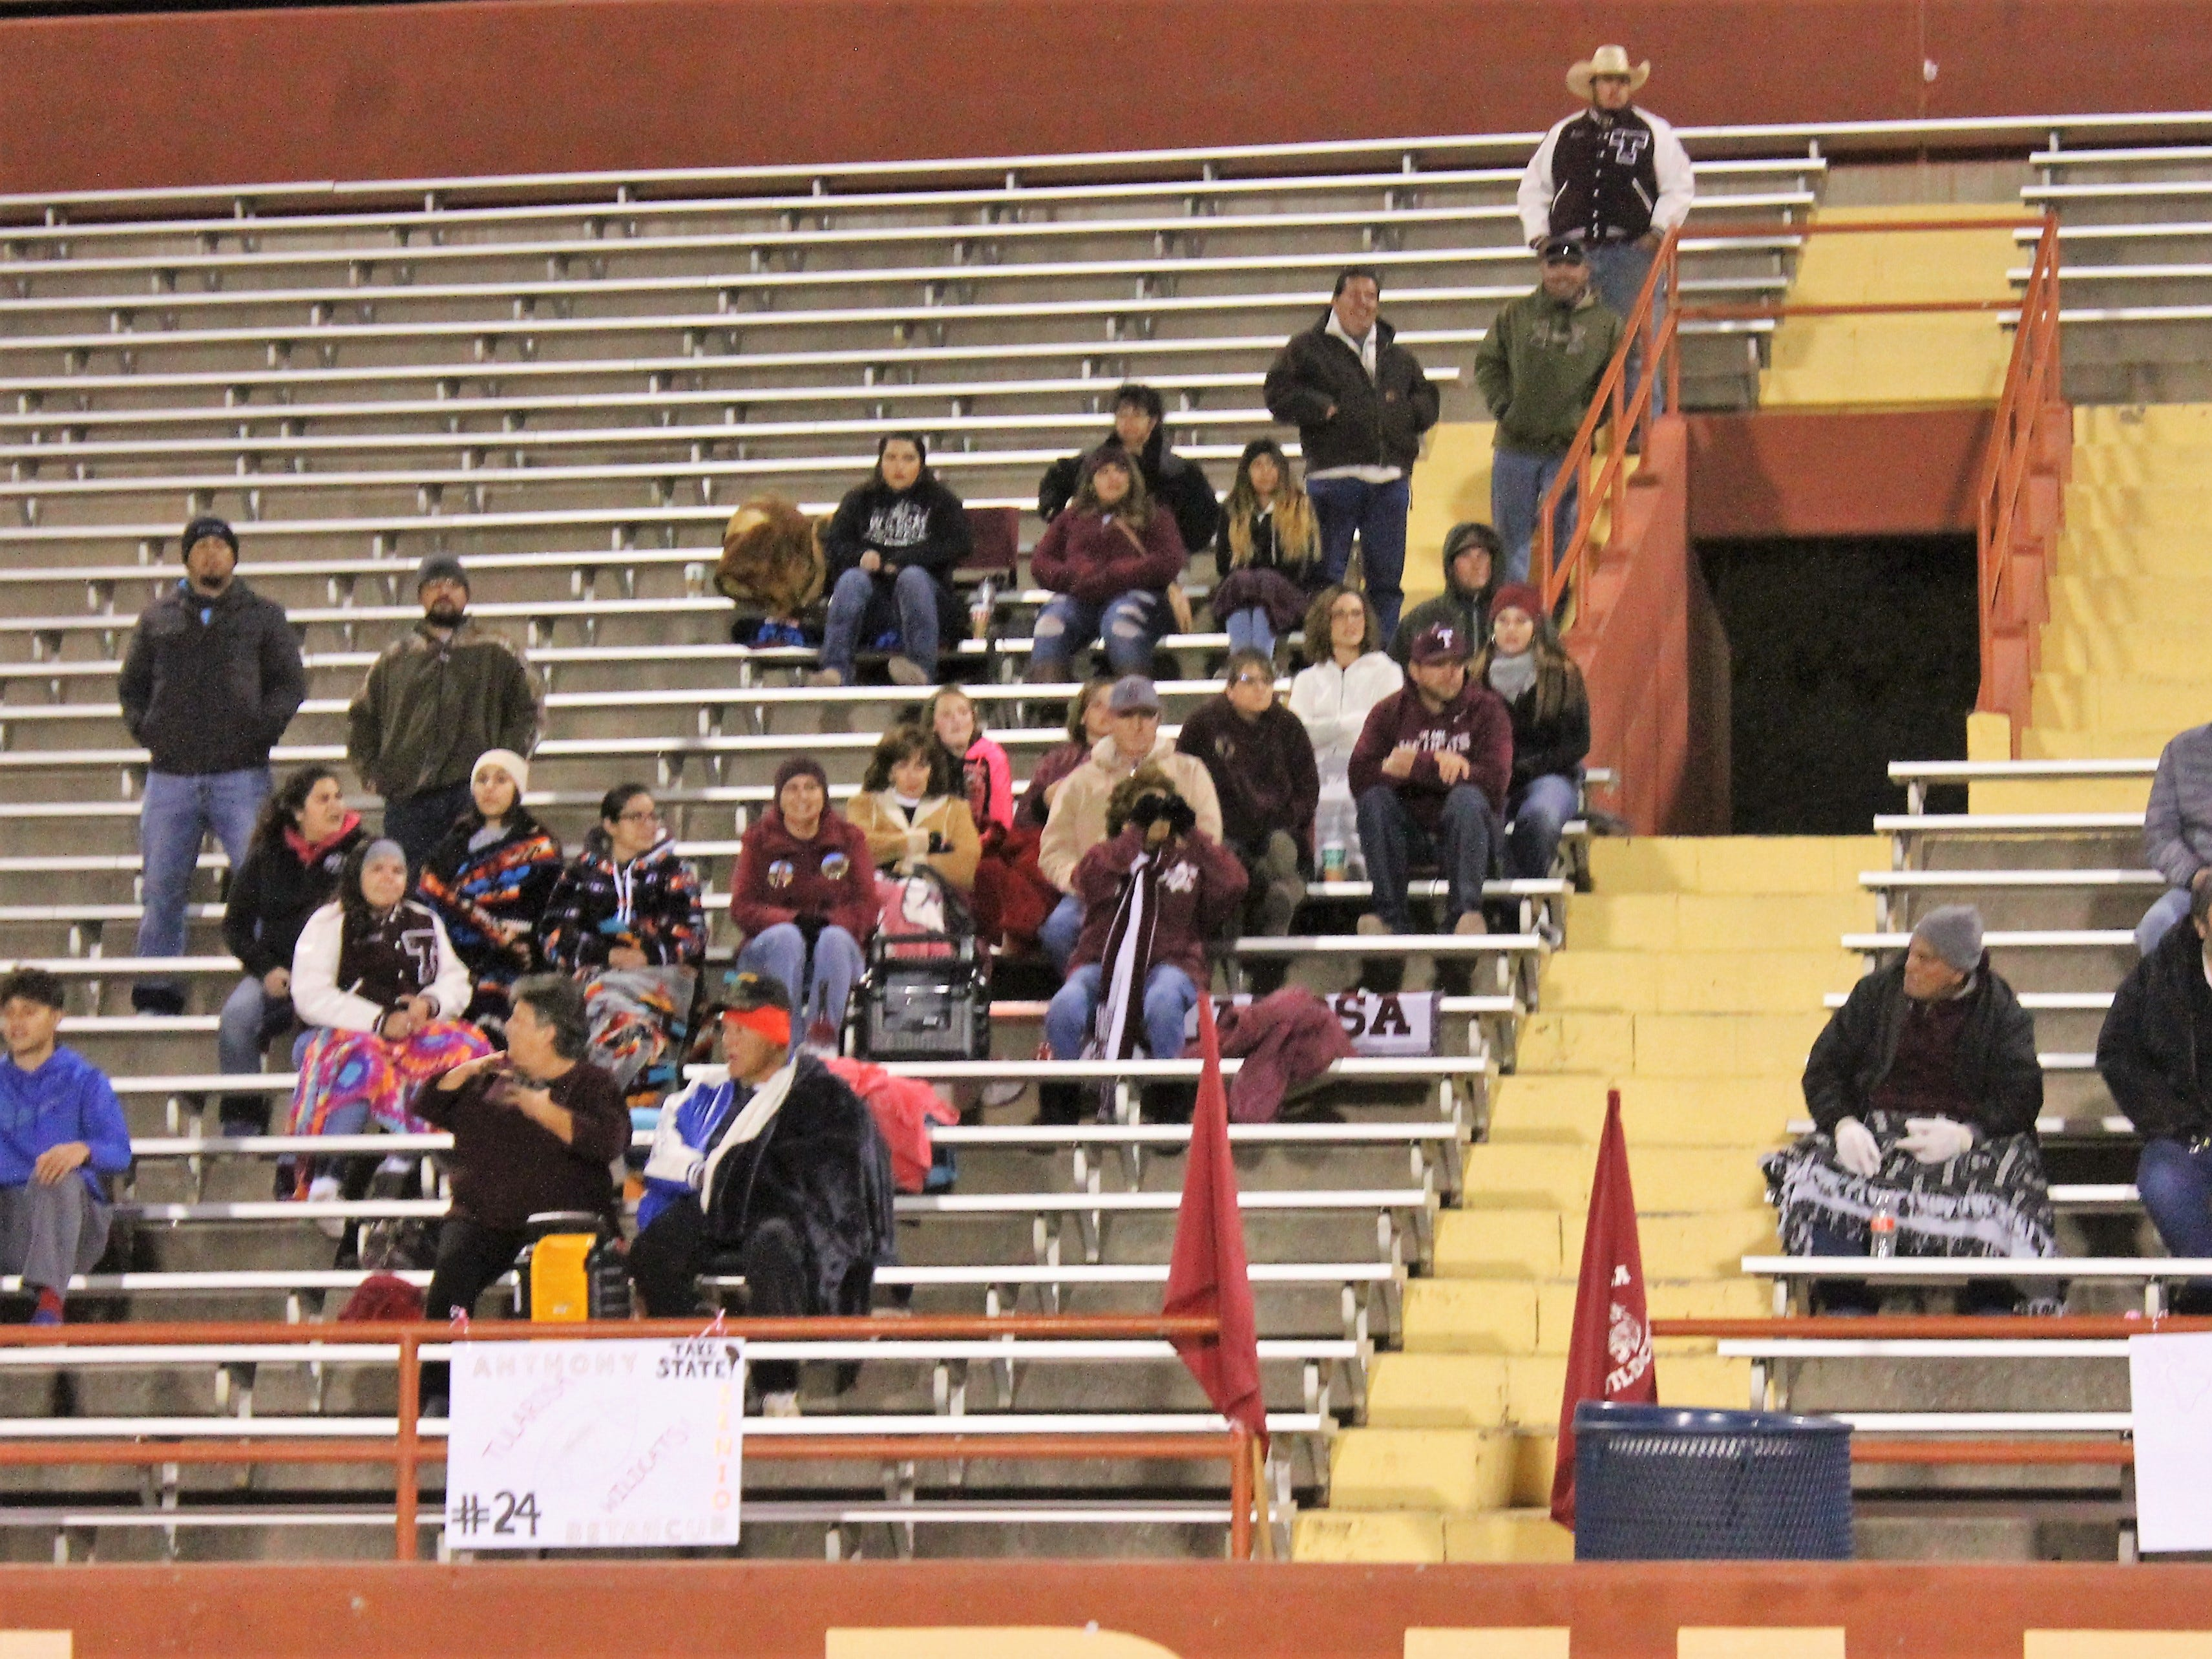 A crowd of Tularosa Wildcat supports at at Friday night's 3A State Championship Quarterfinal against the Hope Christian Huskies. The Huskies won the game 67-14.